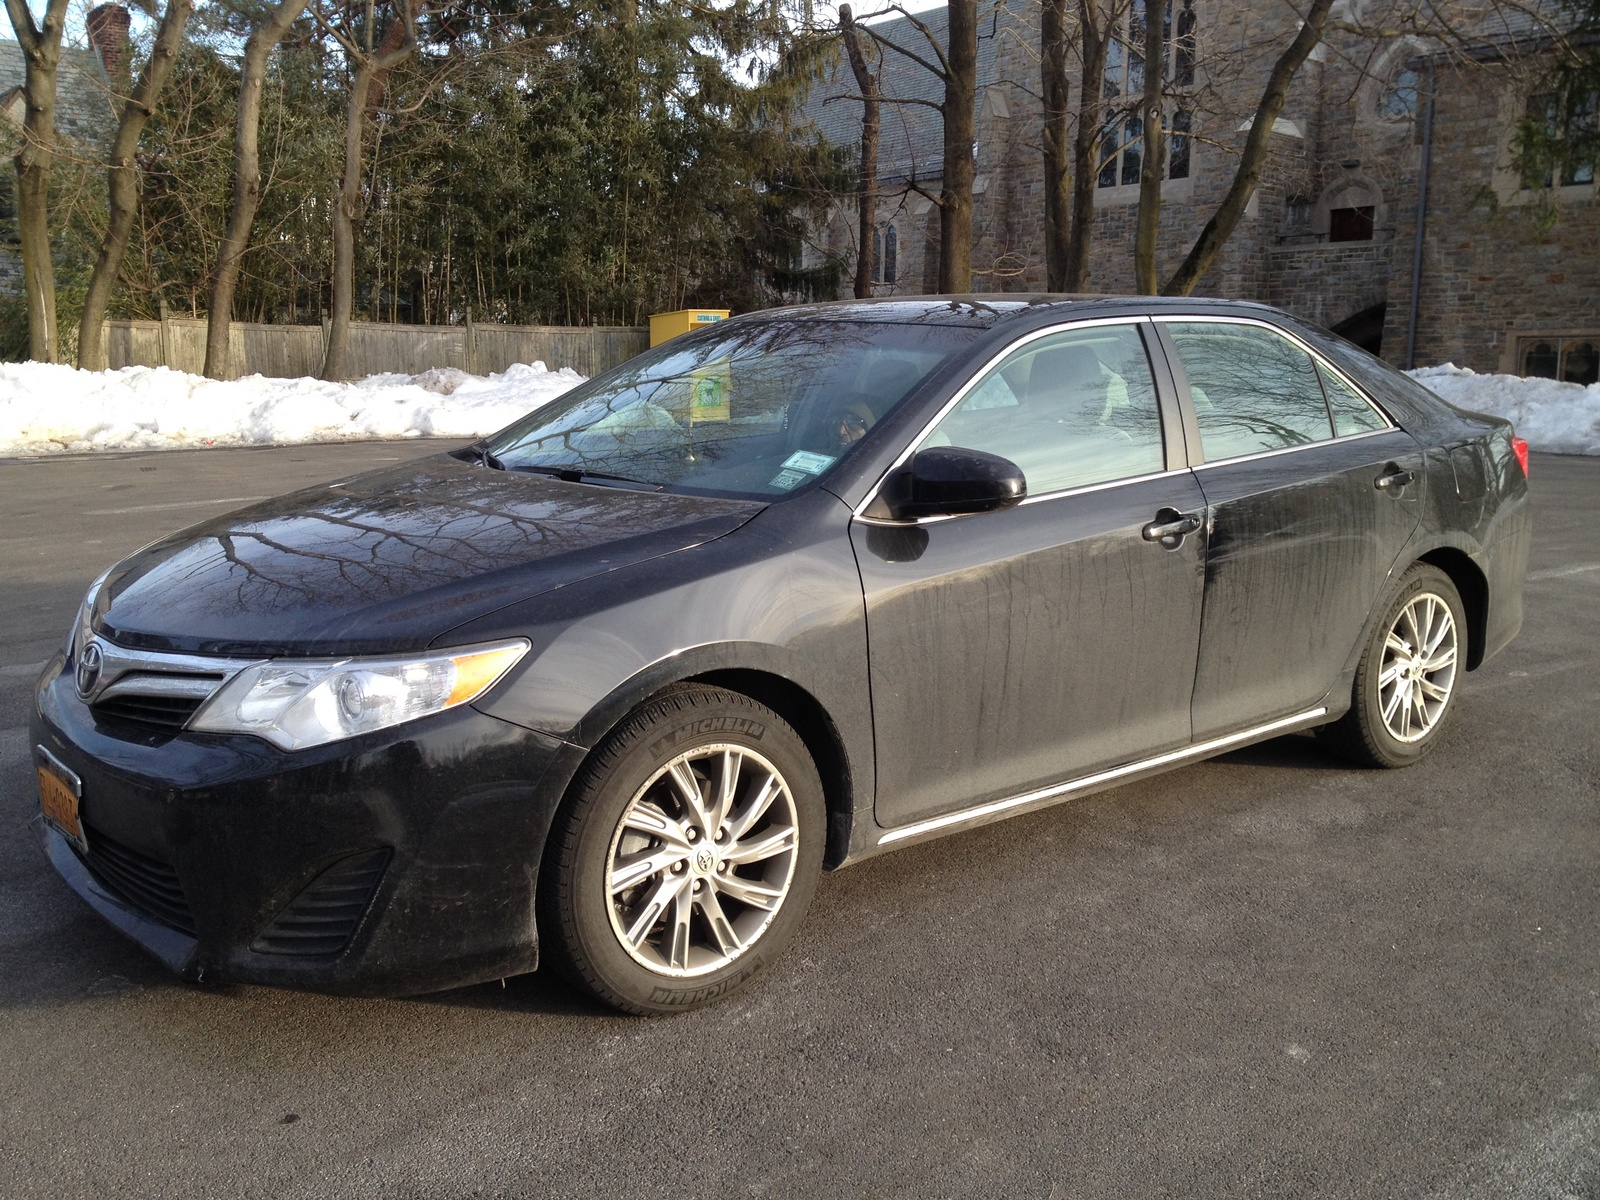 2014 toyota camry se v6 price specs compare cars by holidays oo. Black Bedroom Furniture Sets. Home Design Ideas